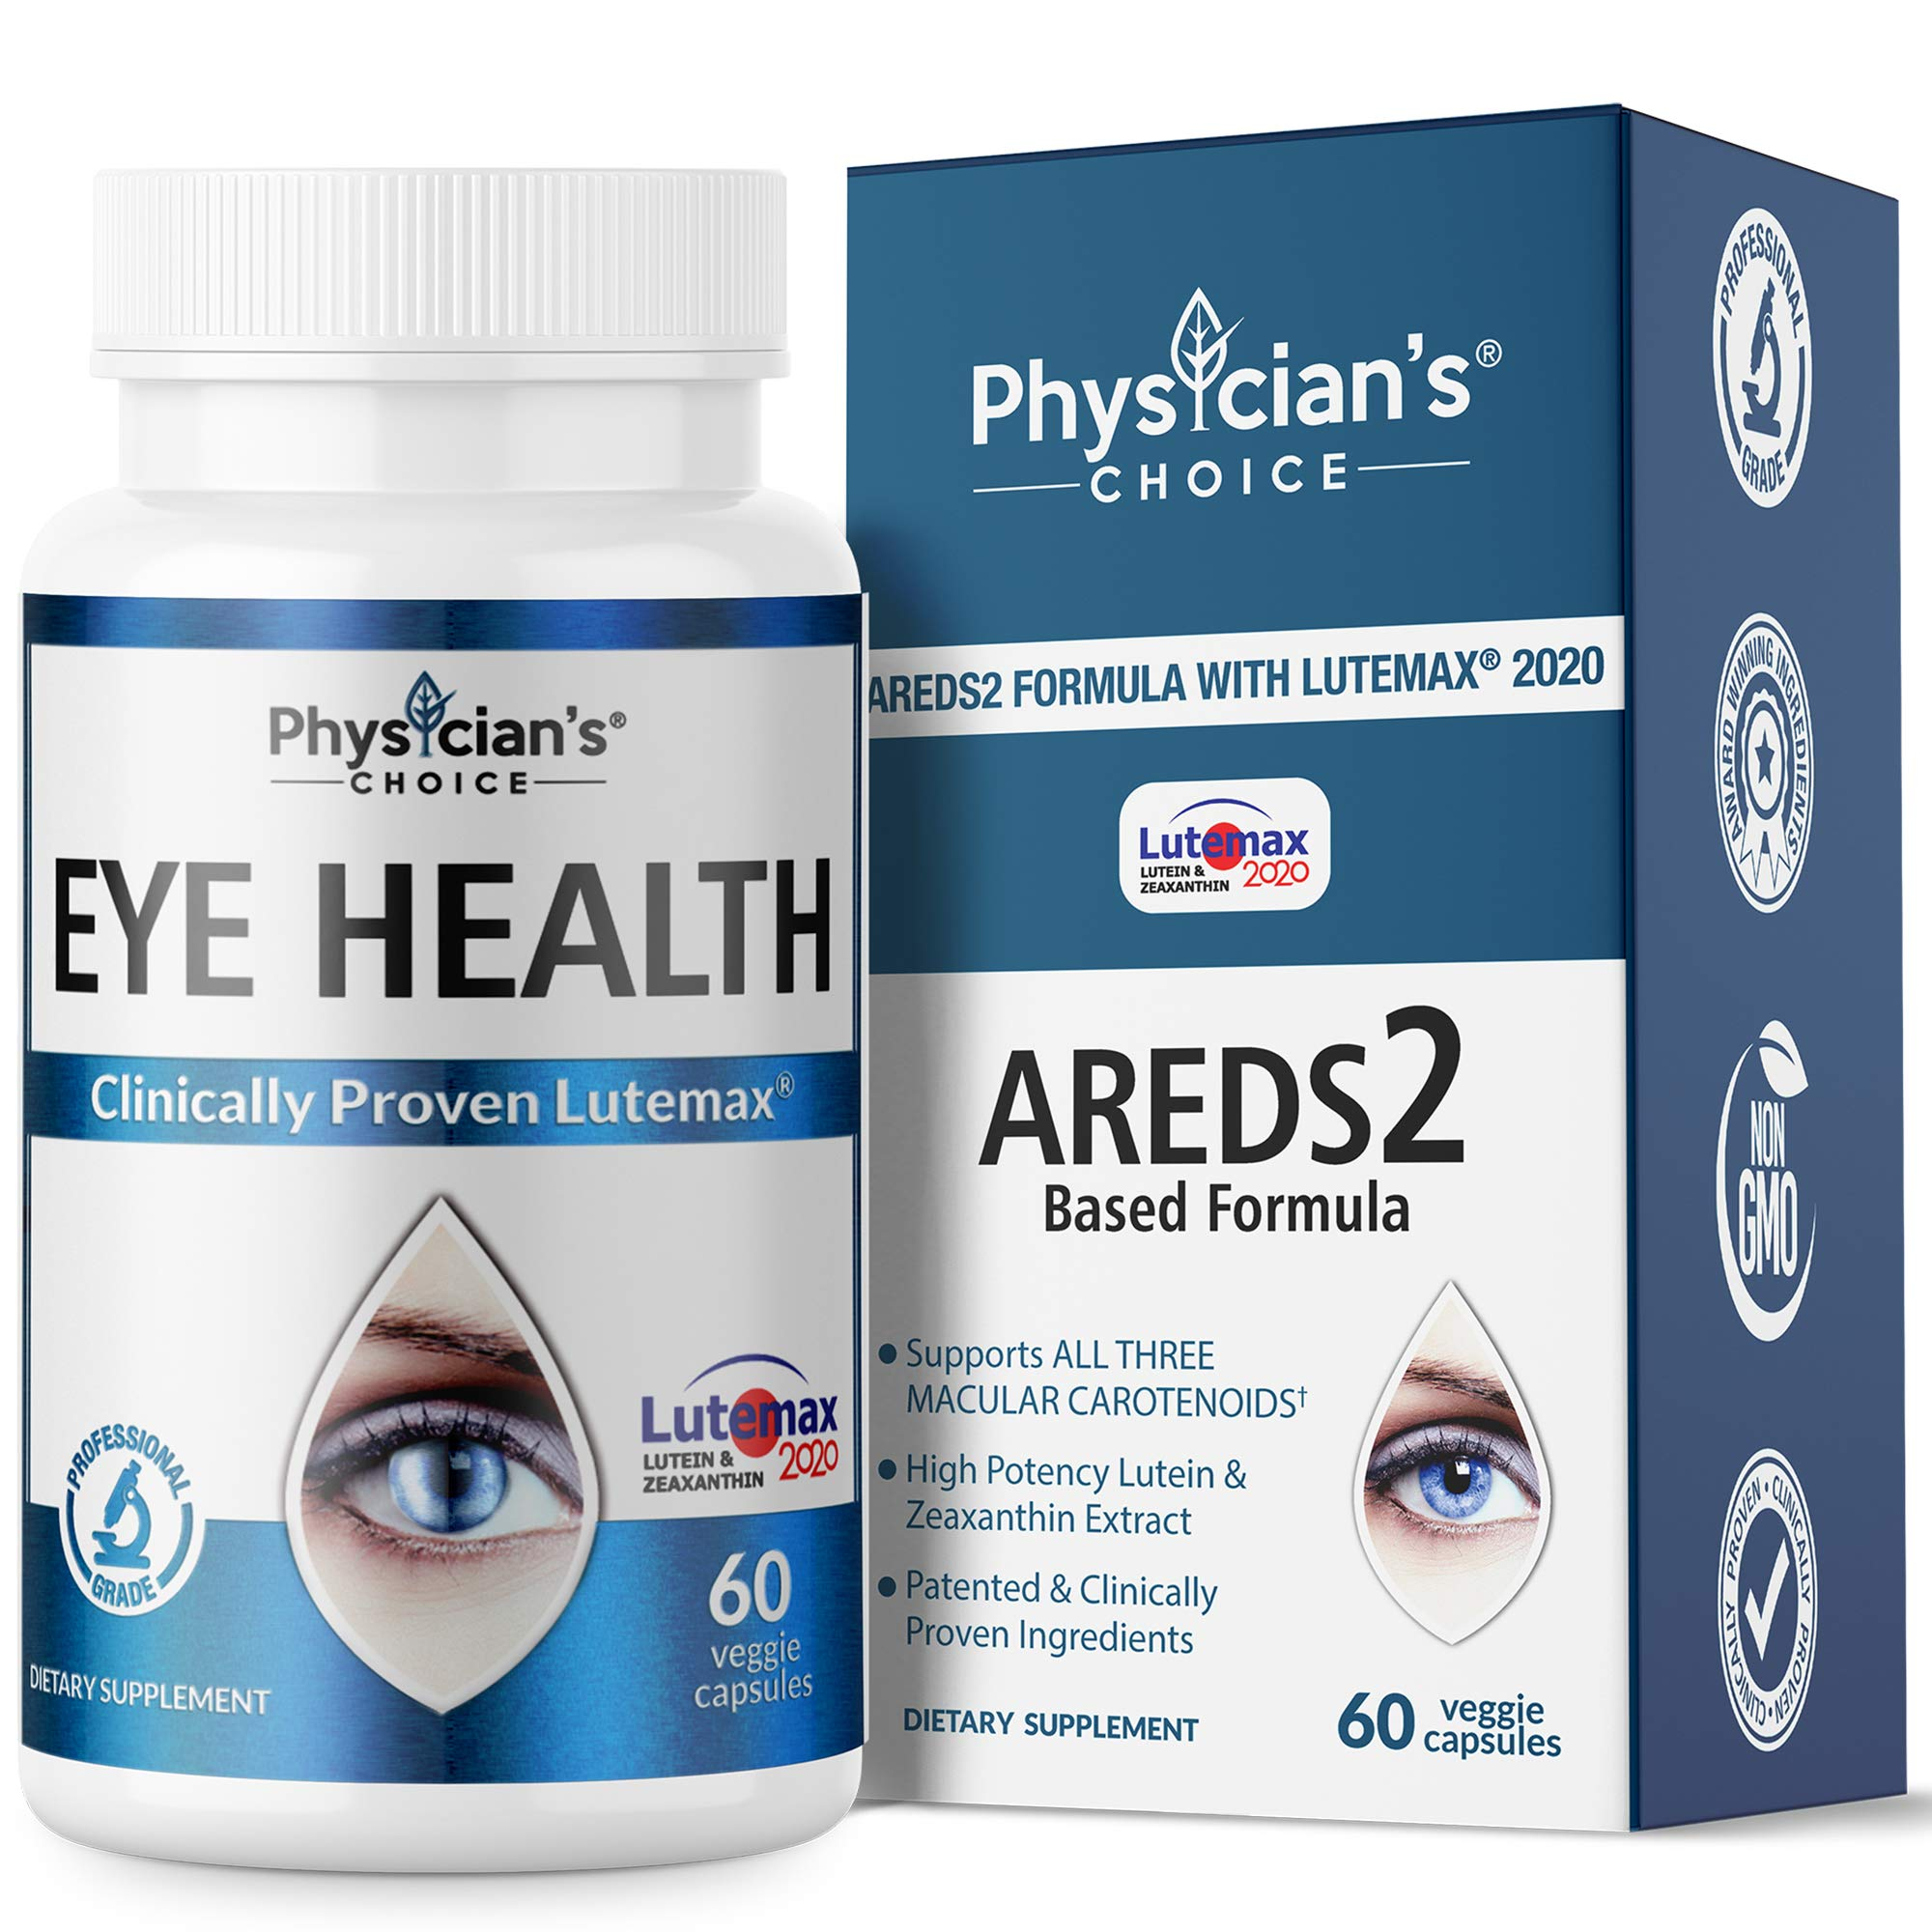 Areds 2 Eye Vitamins (Clinically Proven) Lutein and Zeaxanthin Supplement Lutemax 2020, Supports Eye Strain, Dry Eye, Eye and Vision Health, 2 Award Winning Eye Ingredients Plus Bilberry Extract by Physician's CHOICE